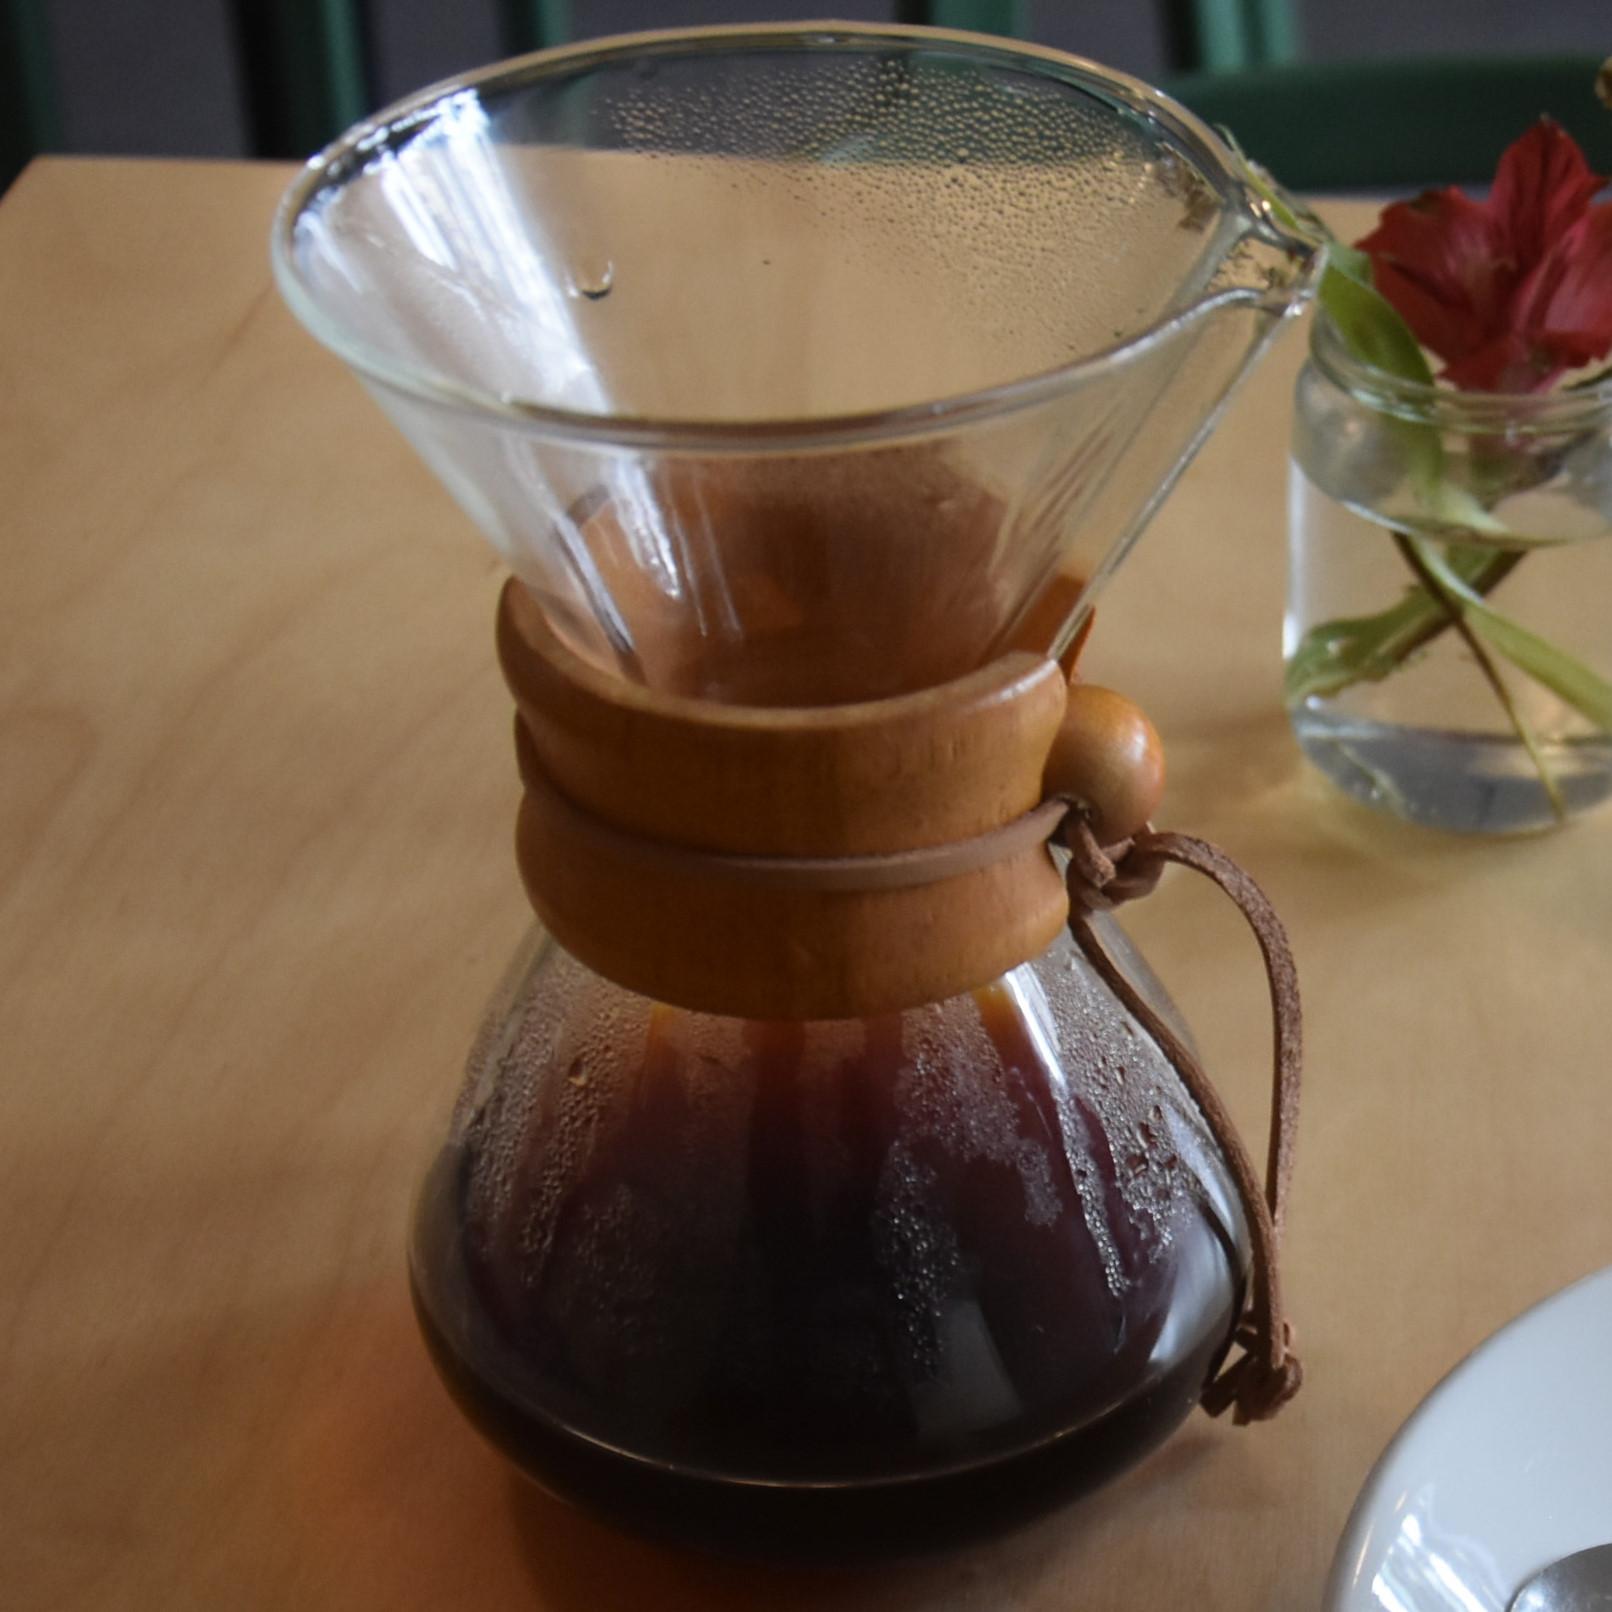 A Chemex of a Los Suspiros from Guatemala, roasted by Square Mile of London and served in Panna, Chester.